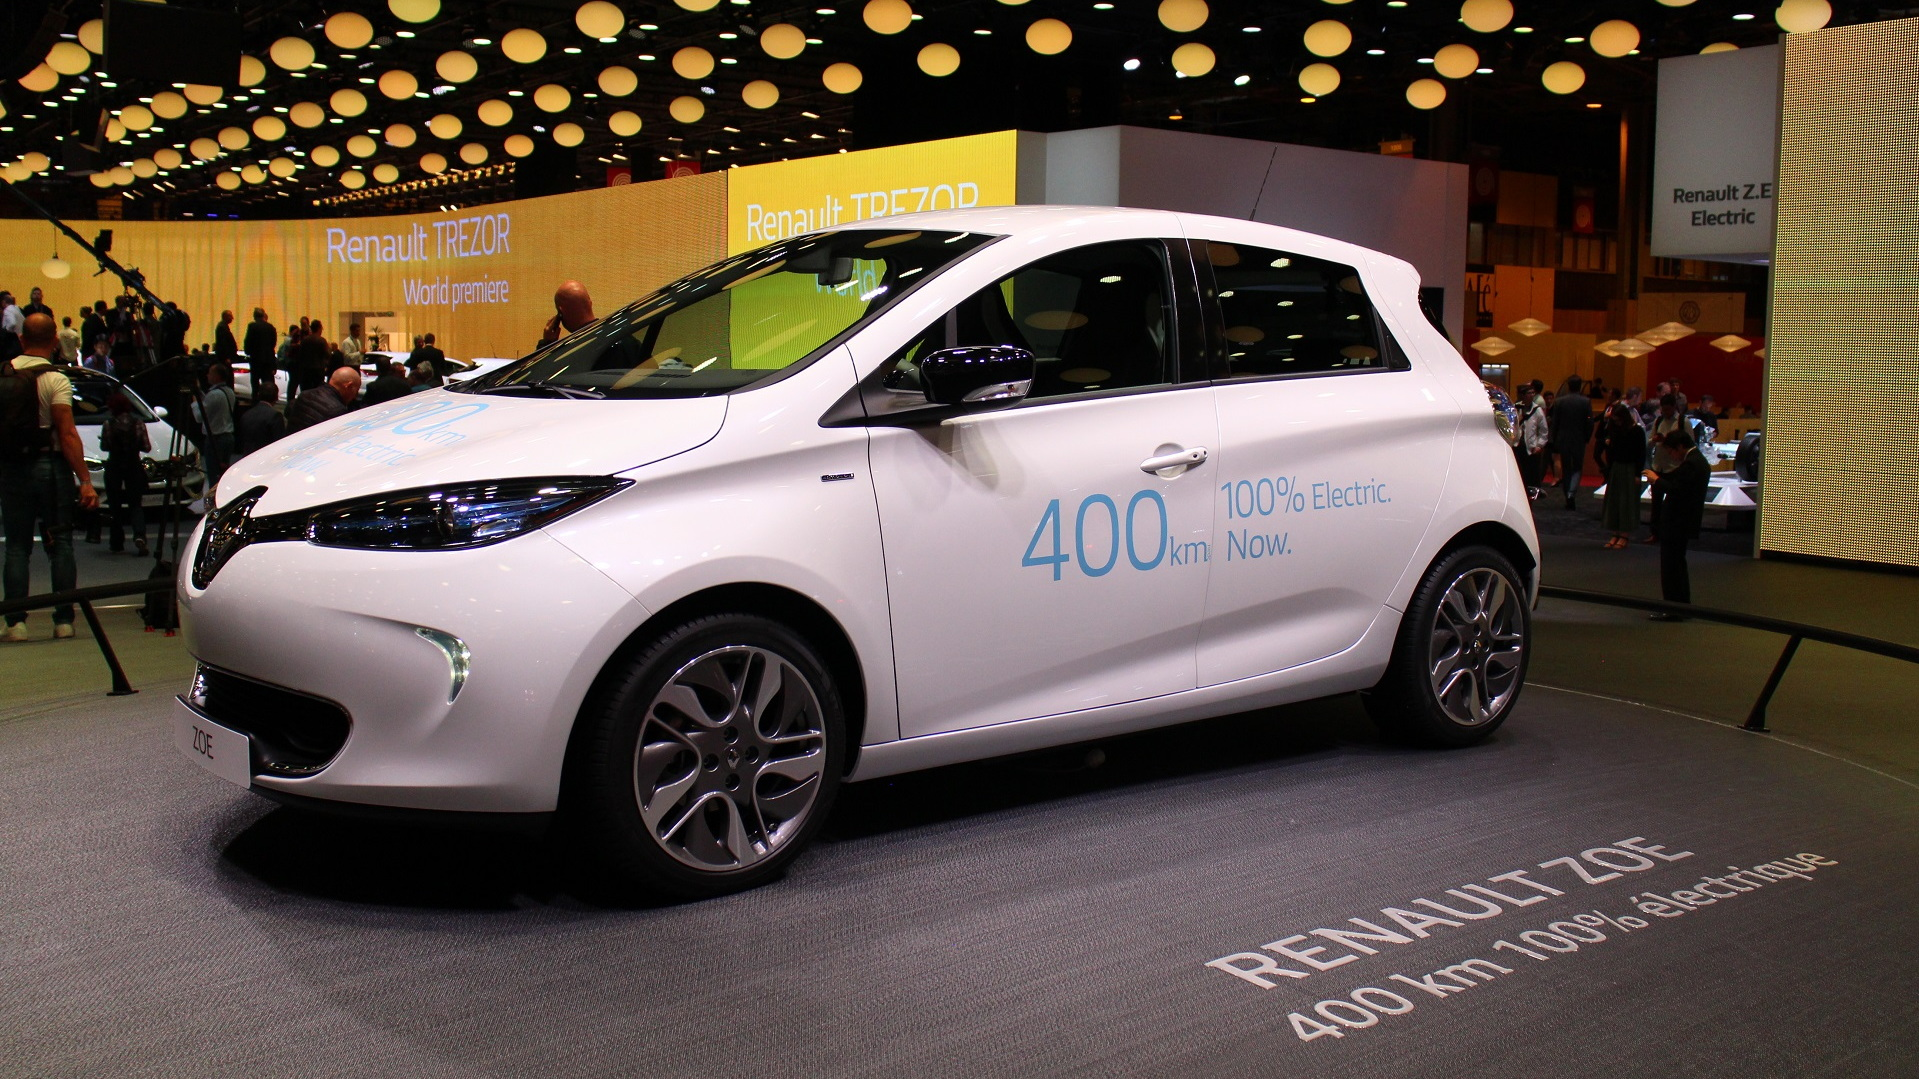 Longer-range Renault Zoe electric car, introduced at 2016 Paris Motor Show